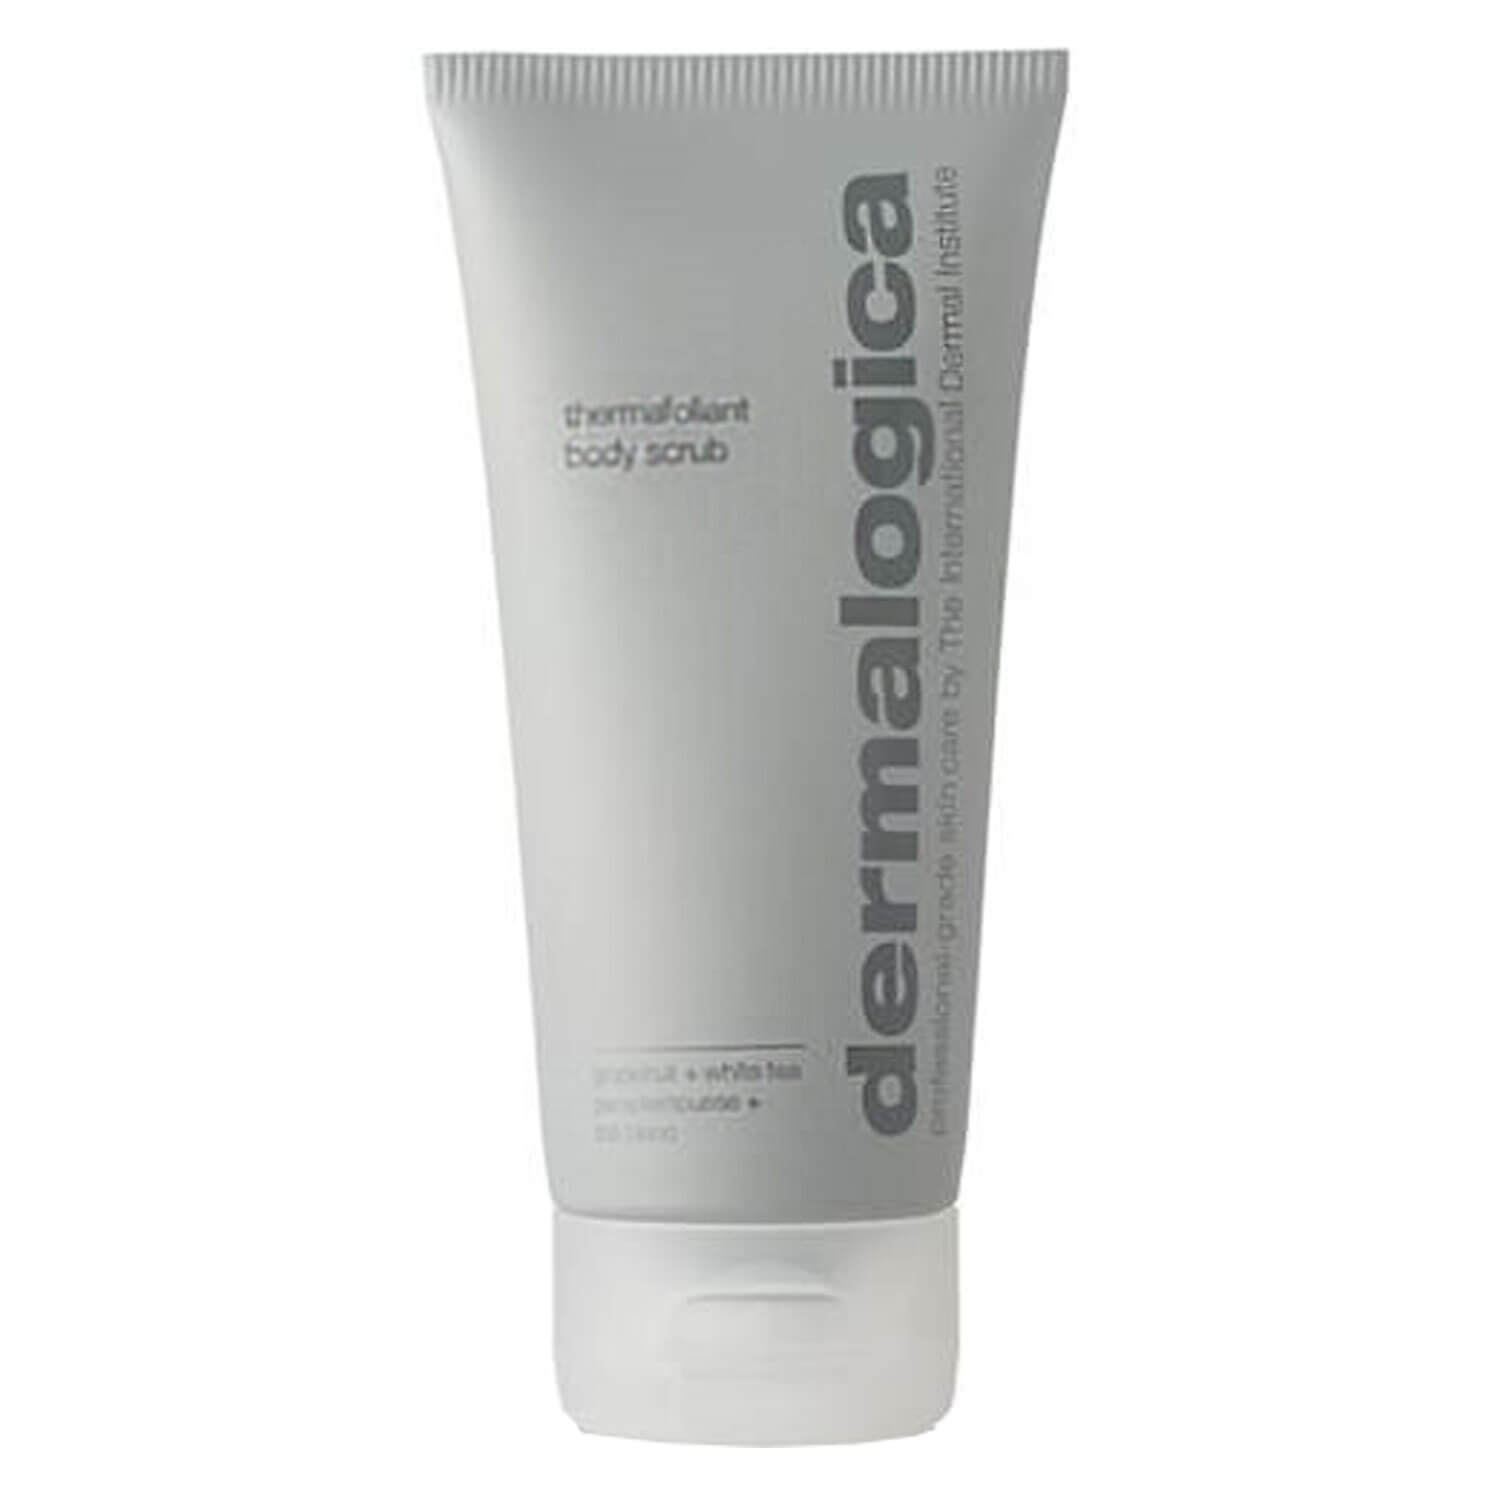 Dermalogica Body - Thermafoliant Body Scrub